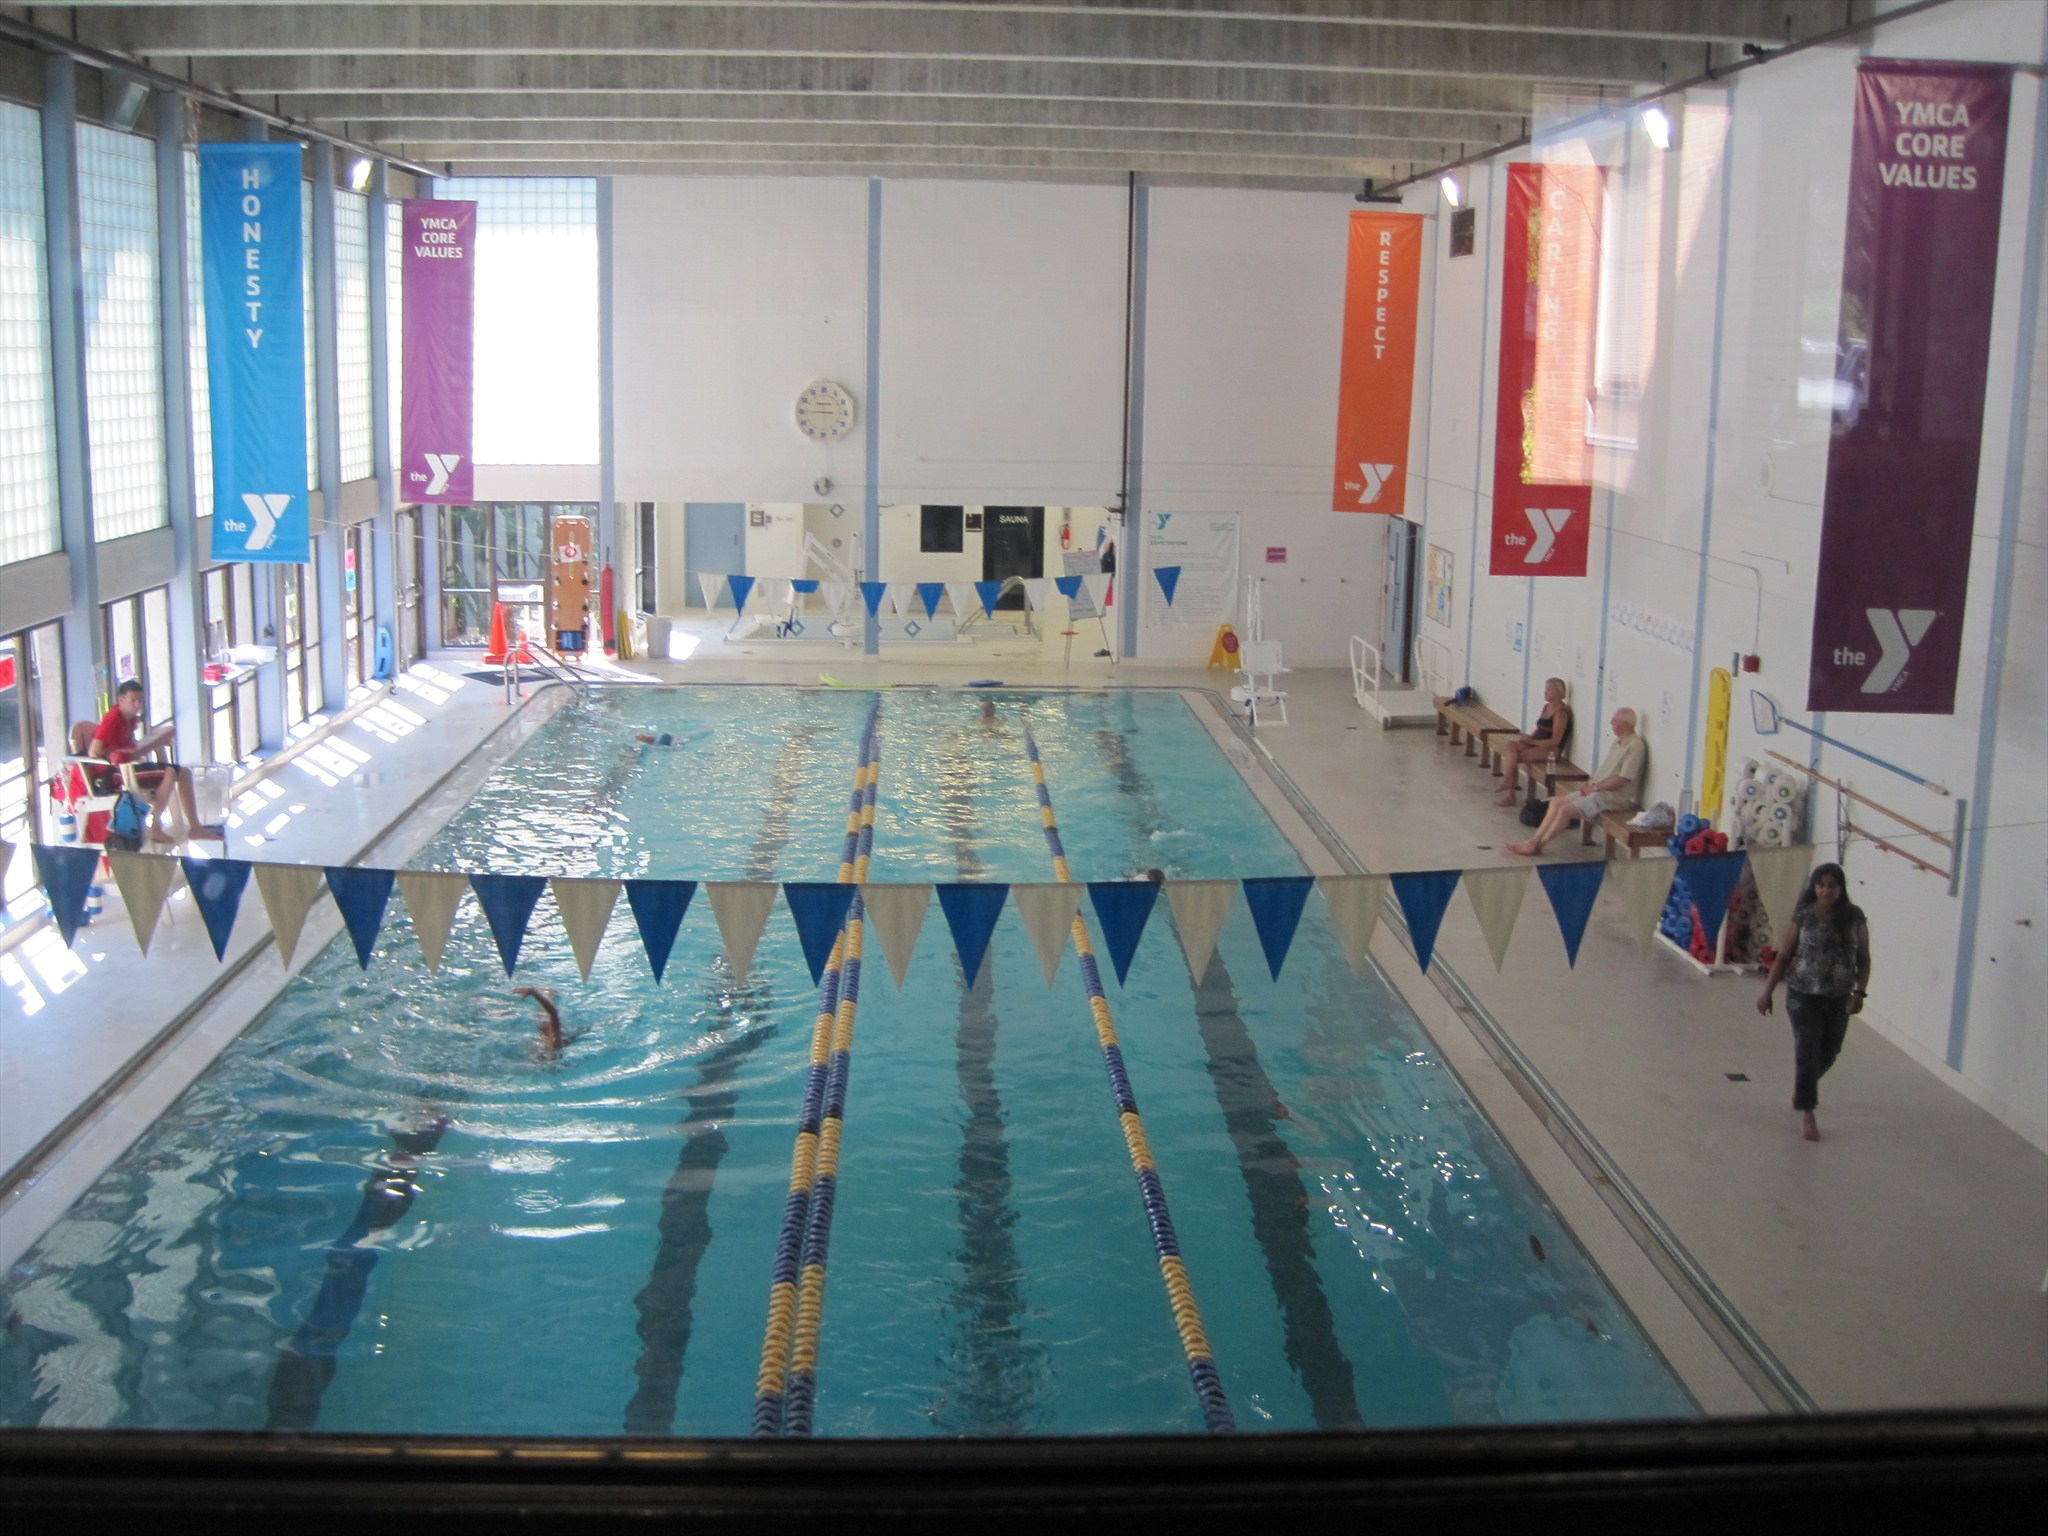 Ymca Swimming Pool Schedule | Home & Architecture Design